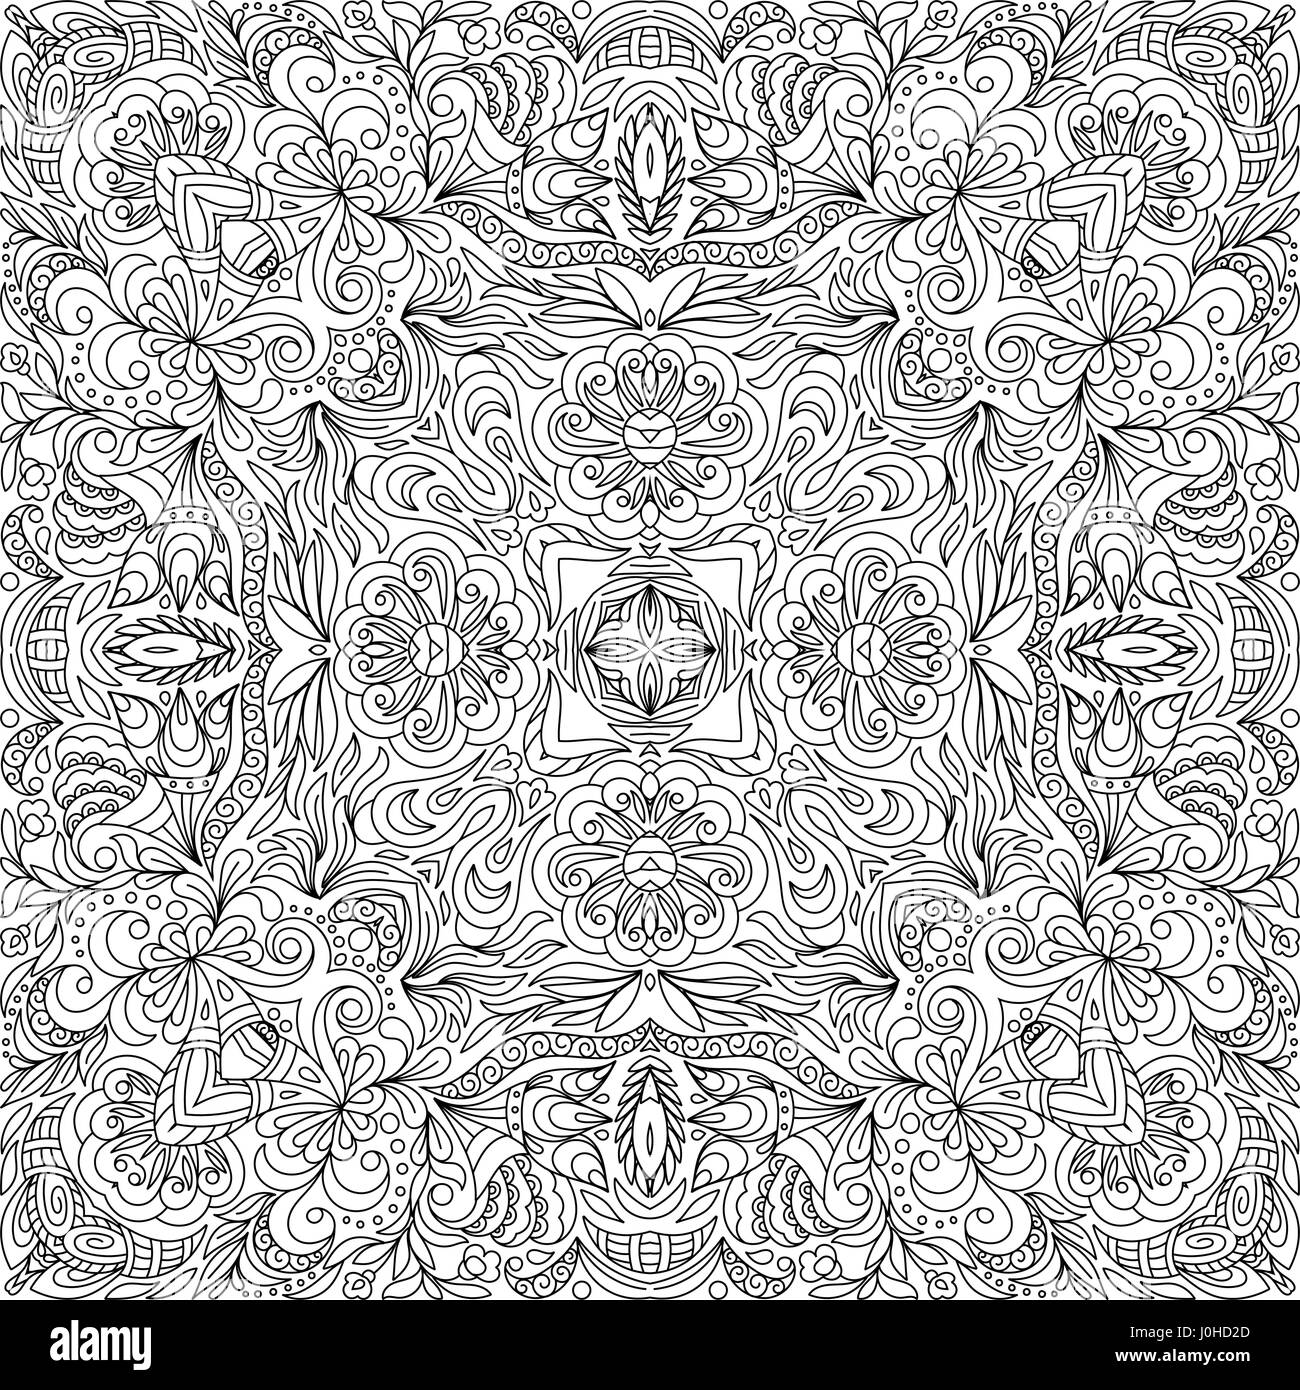 Square coloring book page for adults - floral authentic carpet Stock ...